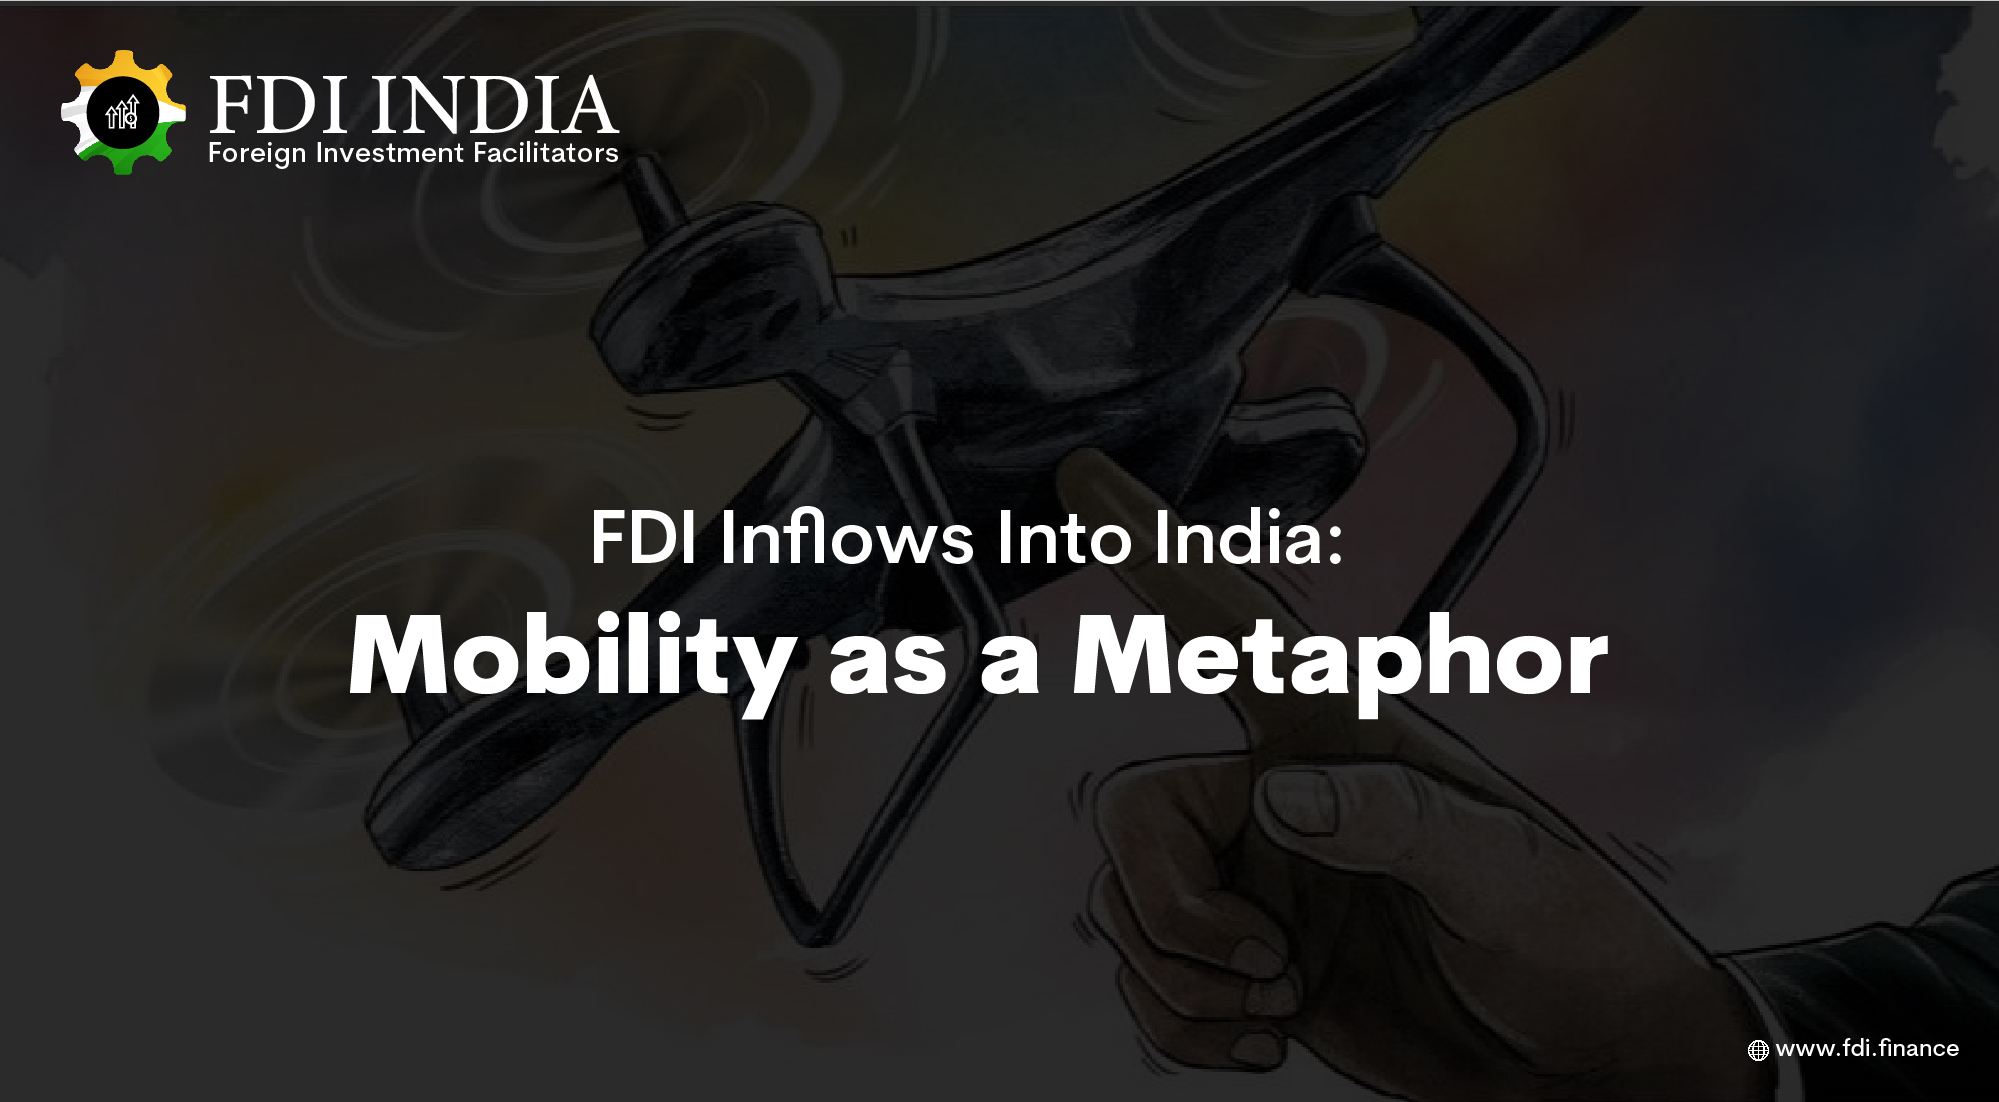 FDI Inflows Into India: Mobility as a Metaphor